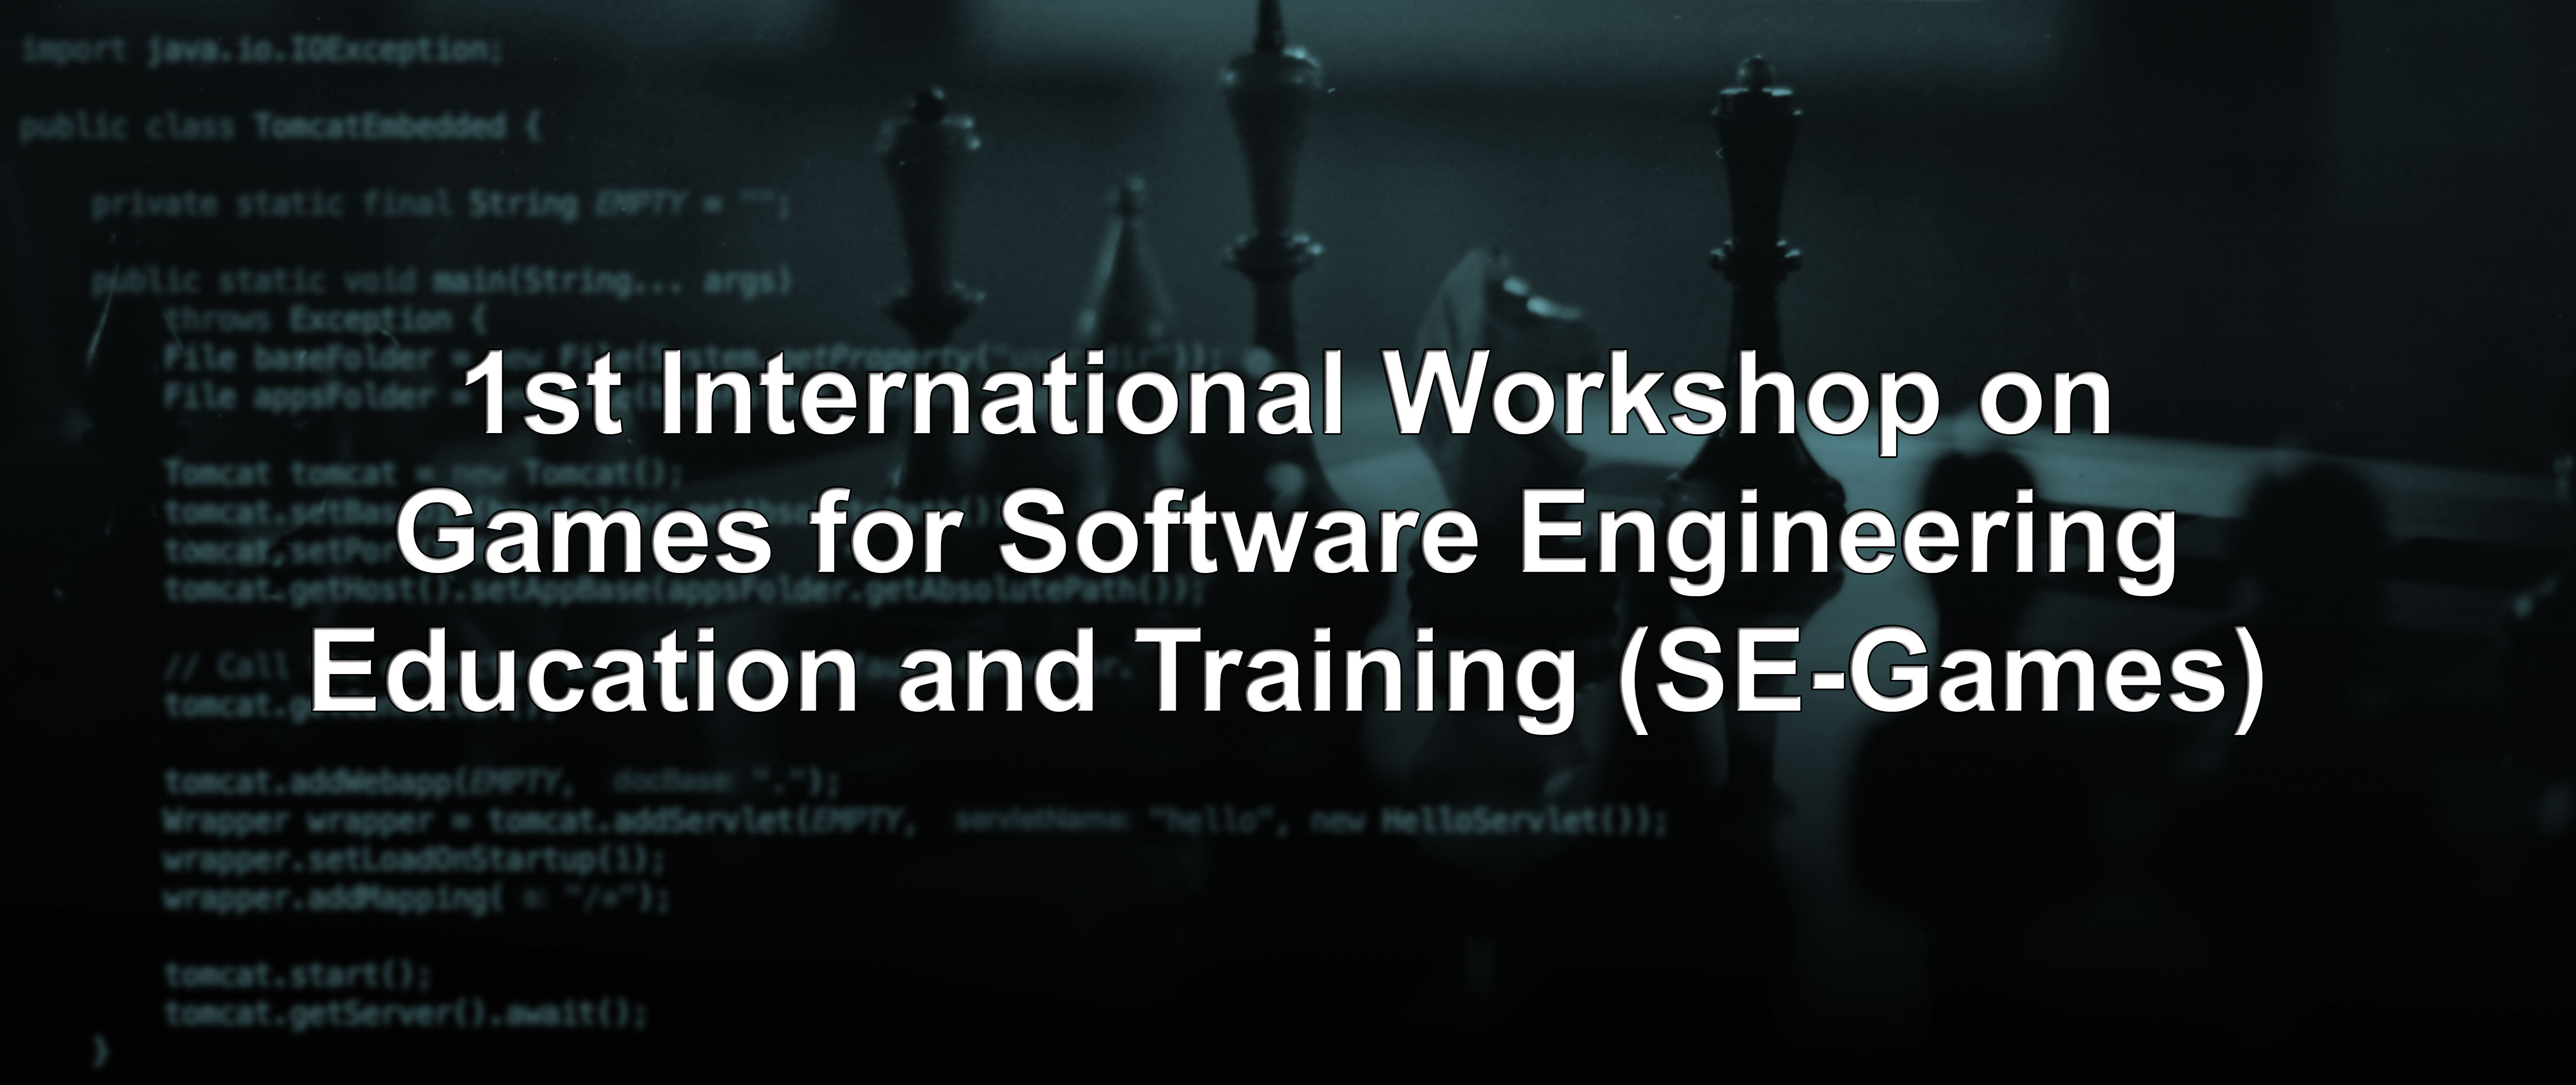 1st International Workshop on Games for Software Engineering Education and Training (SE-Games)